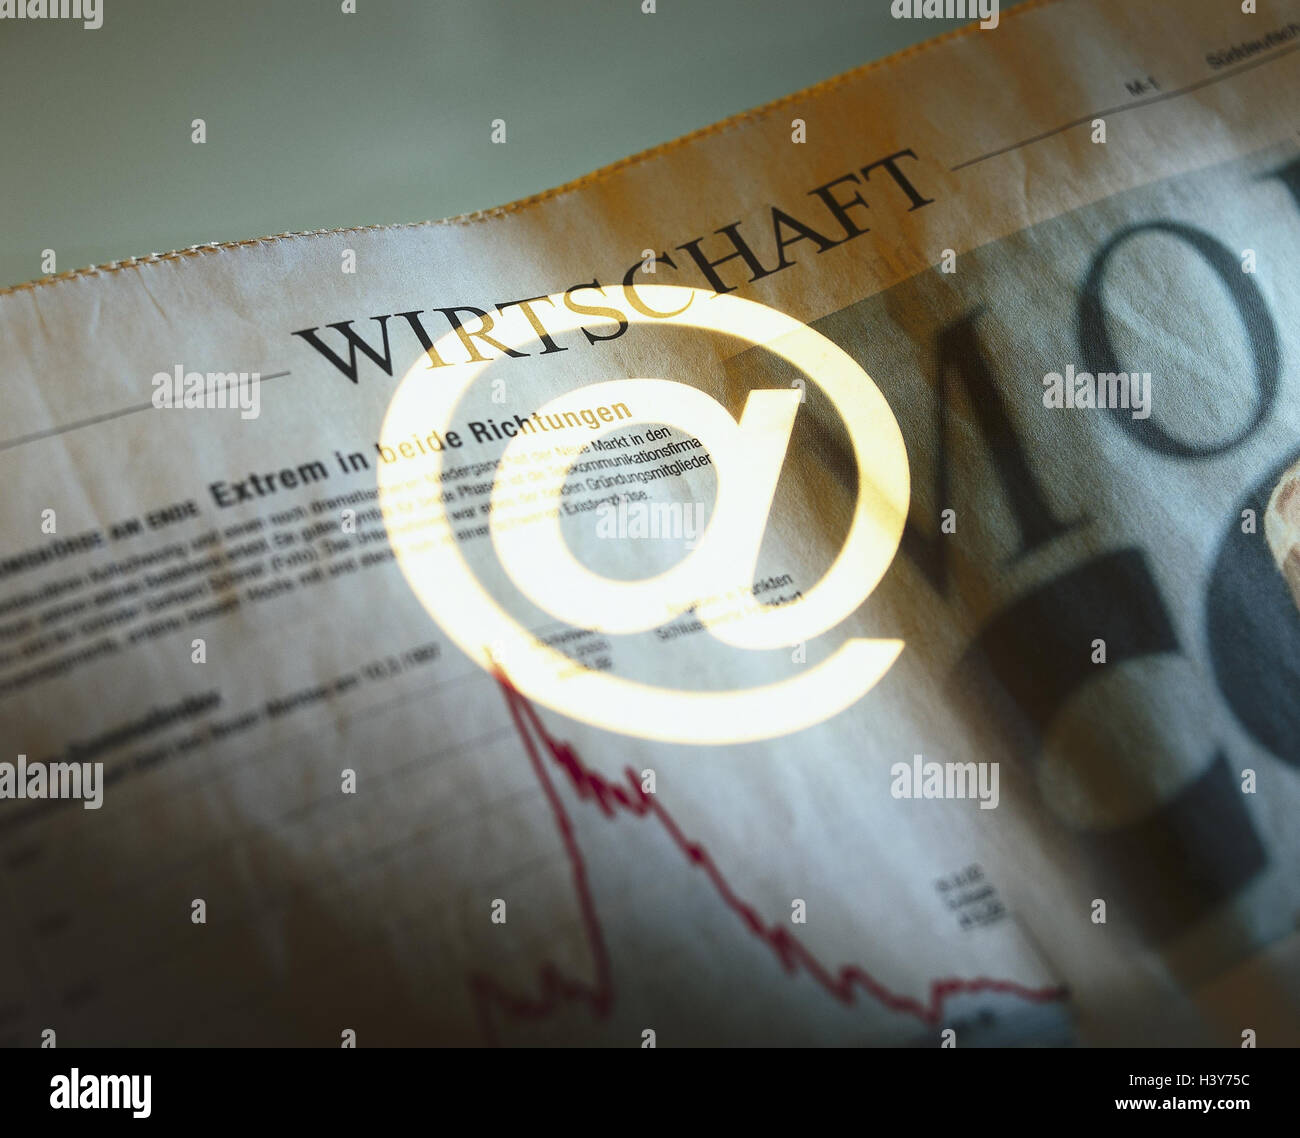 Composing, economic newspaper, at-sign, Internet, online, contact, e-mail, communication, economy, online, economic - Stock Image